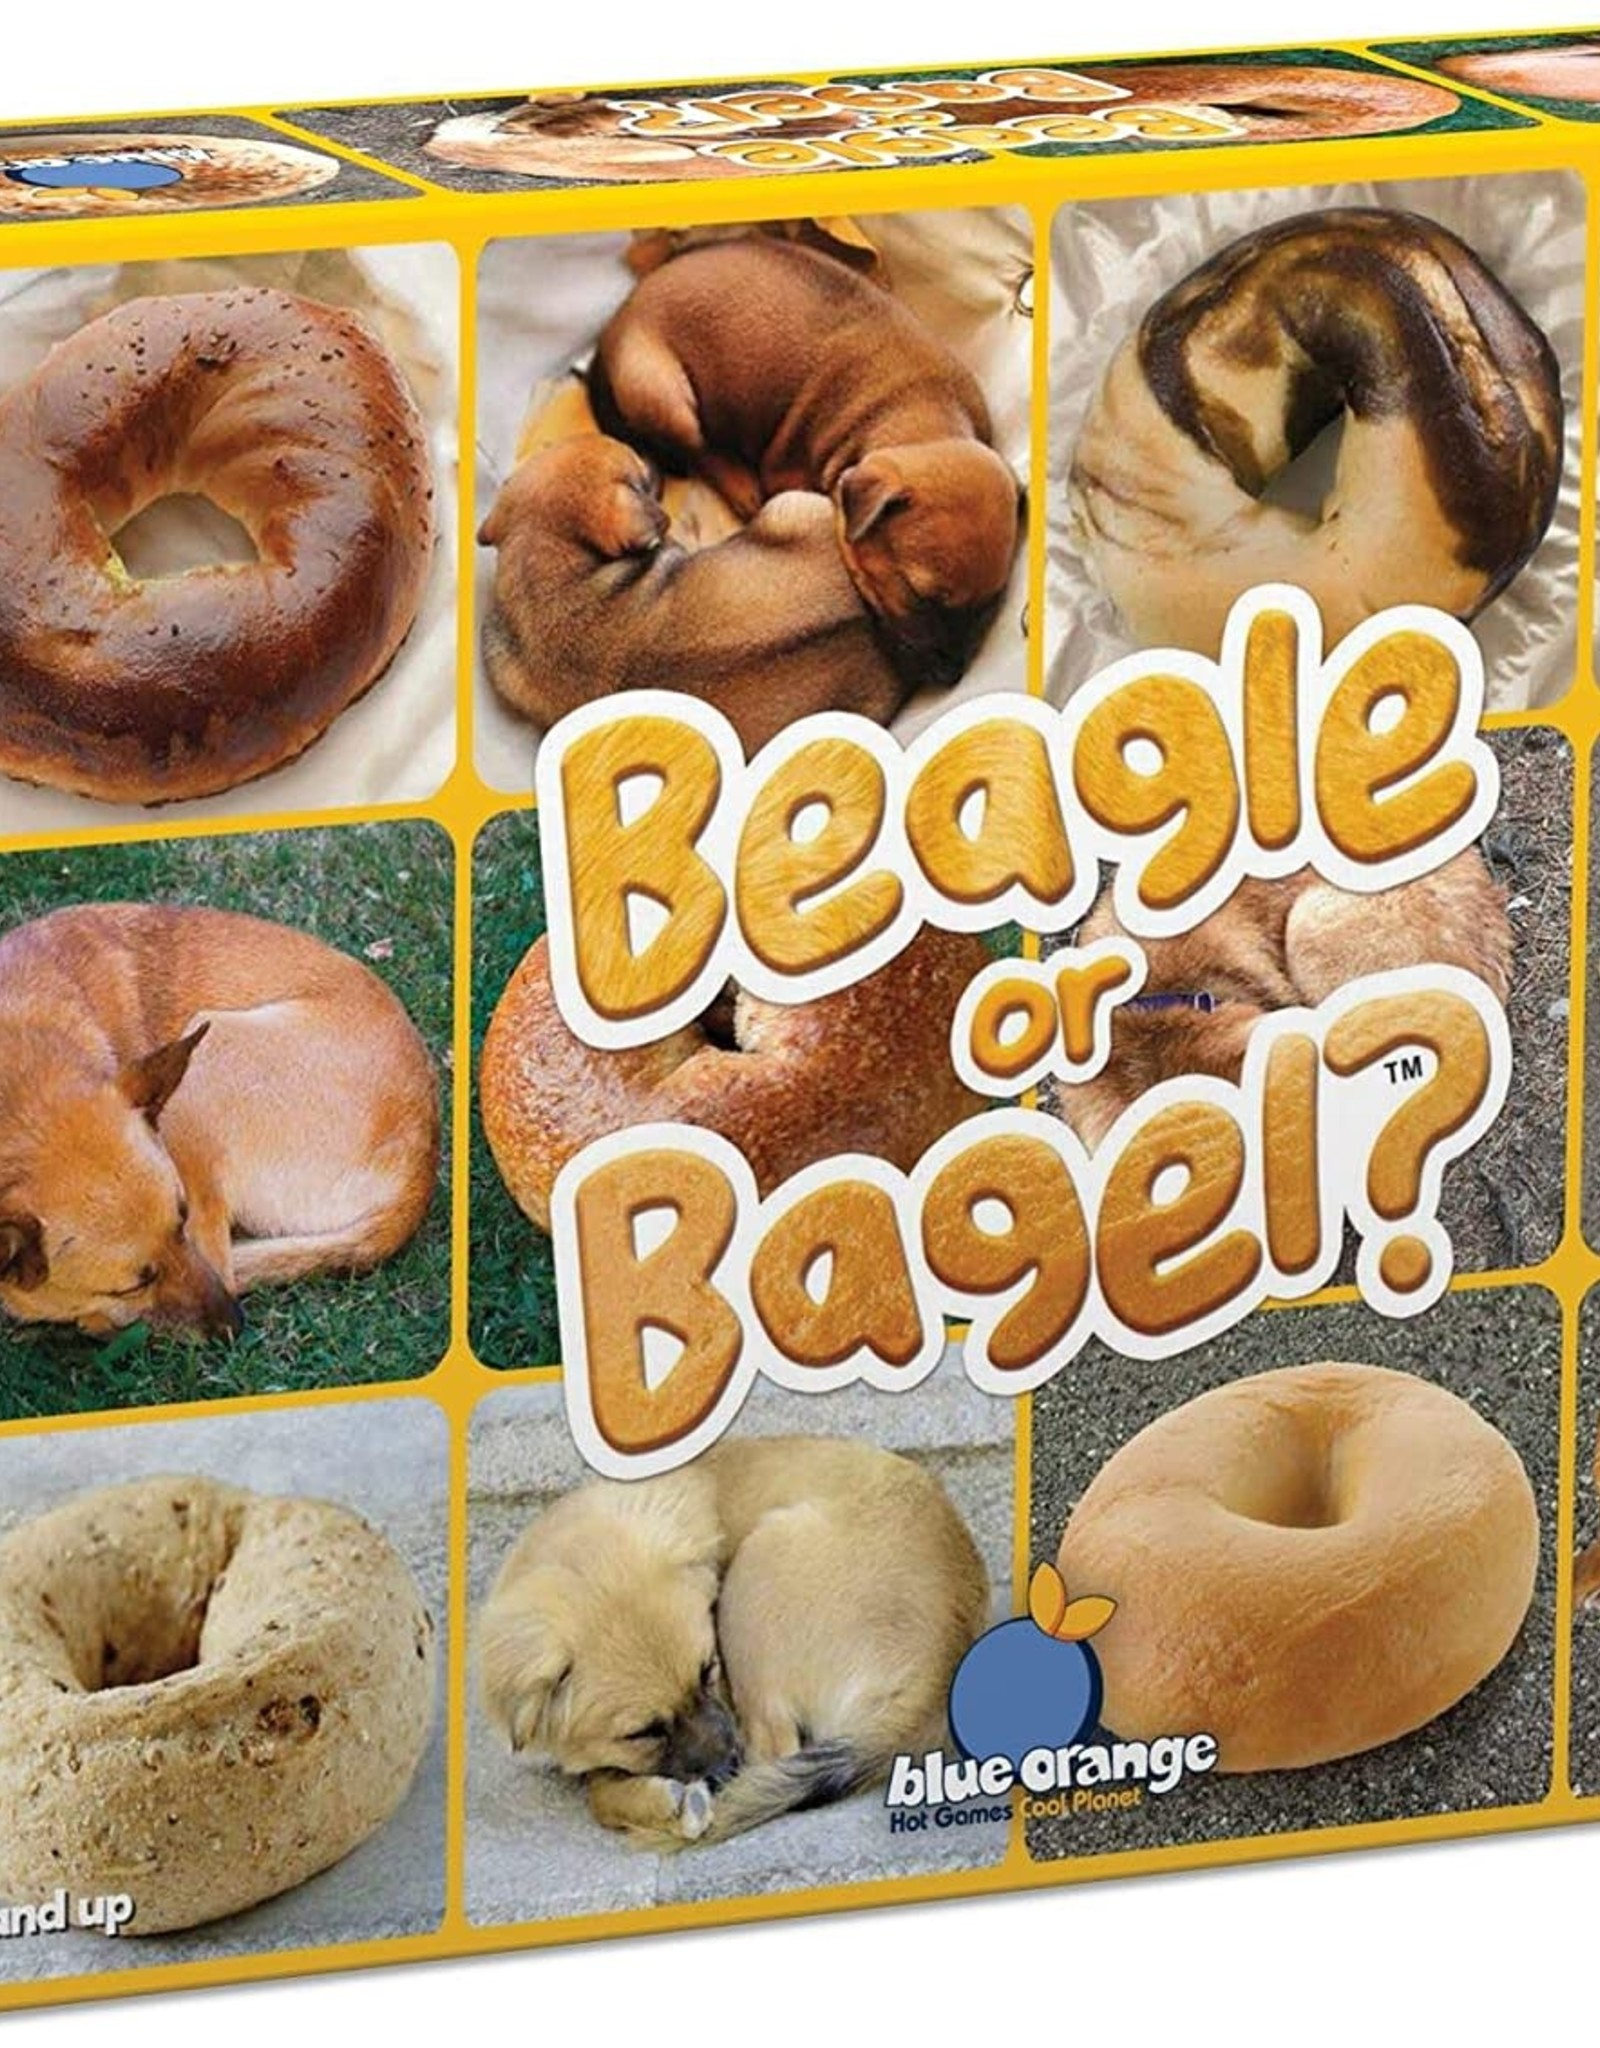 Beagle or Bagel